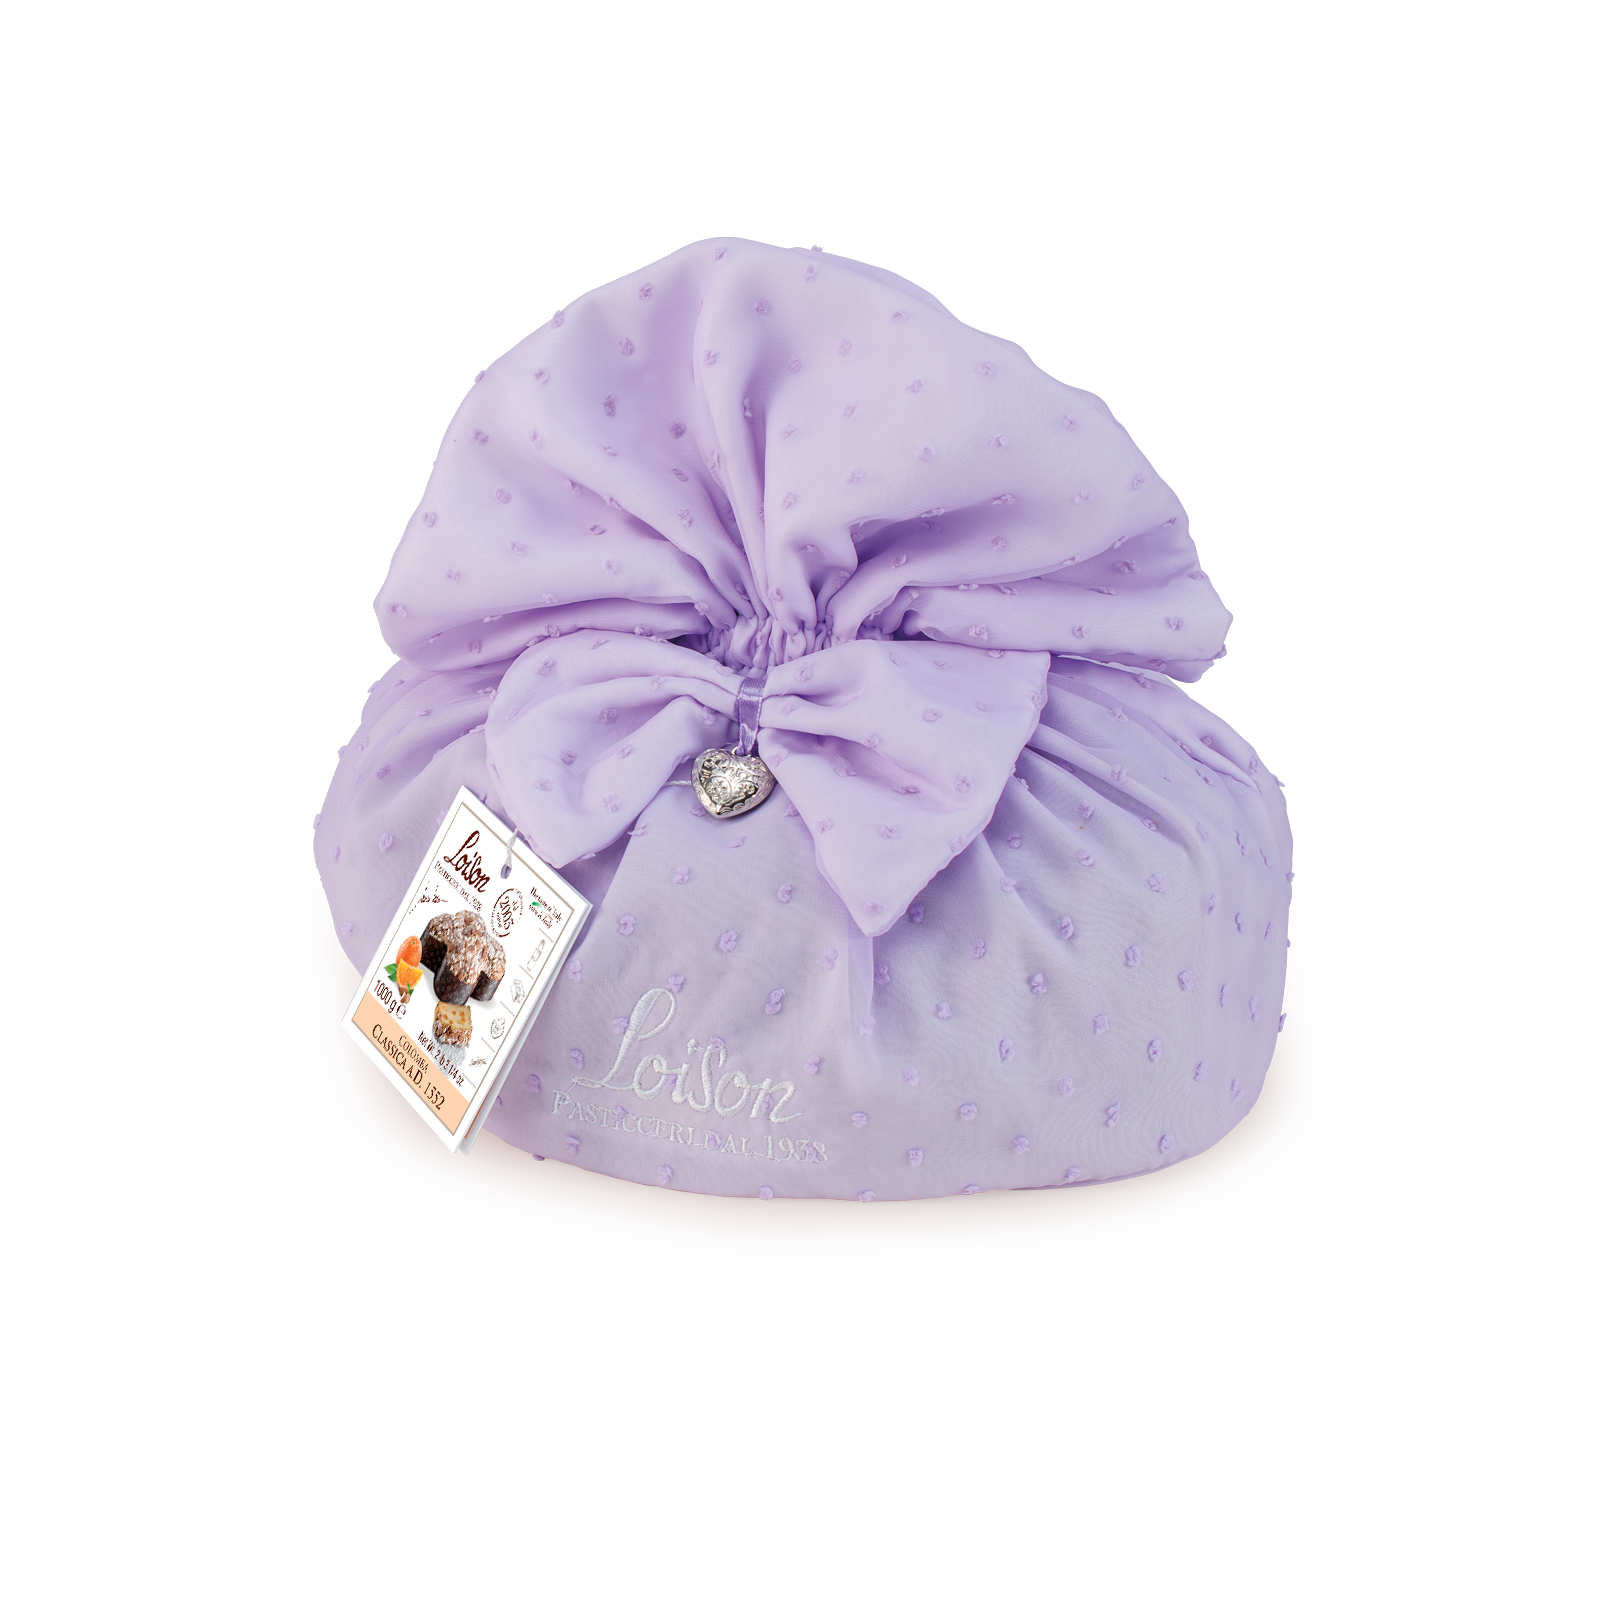 Traditional Colomba cake in fabric pouches